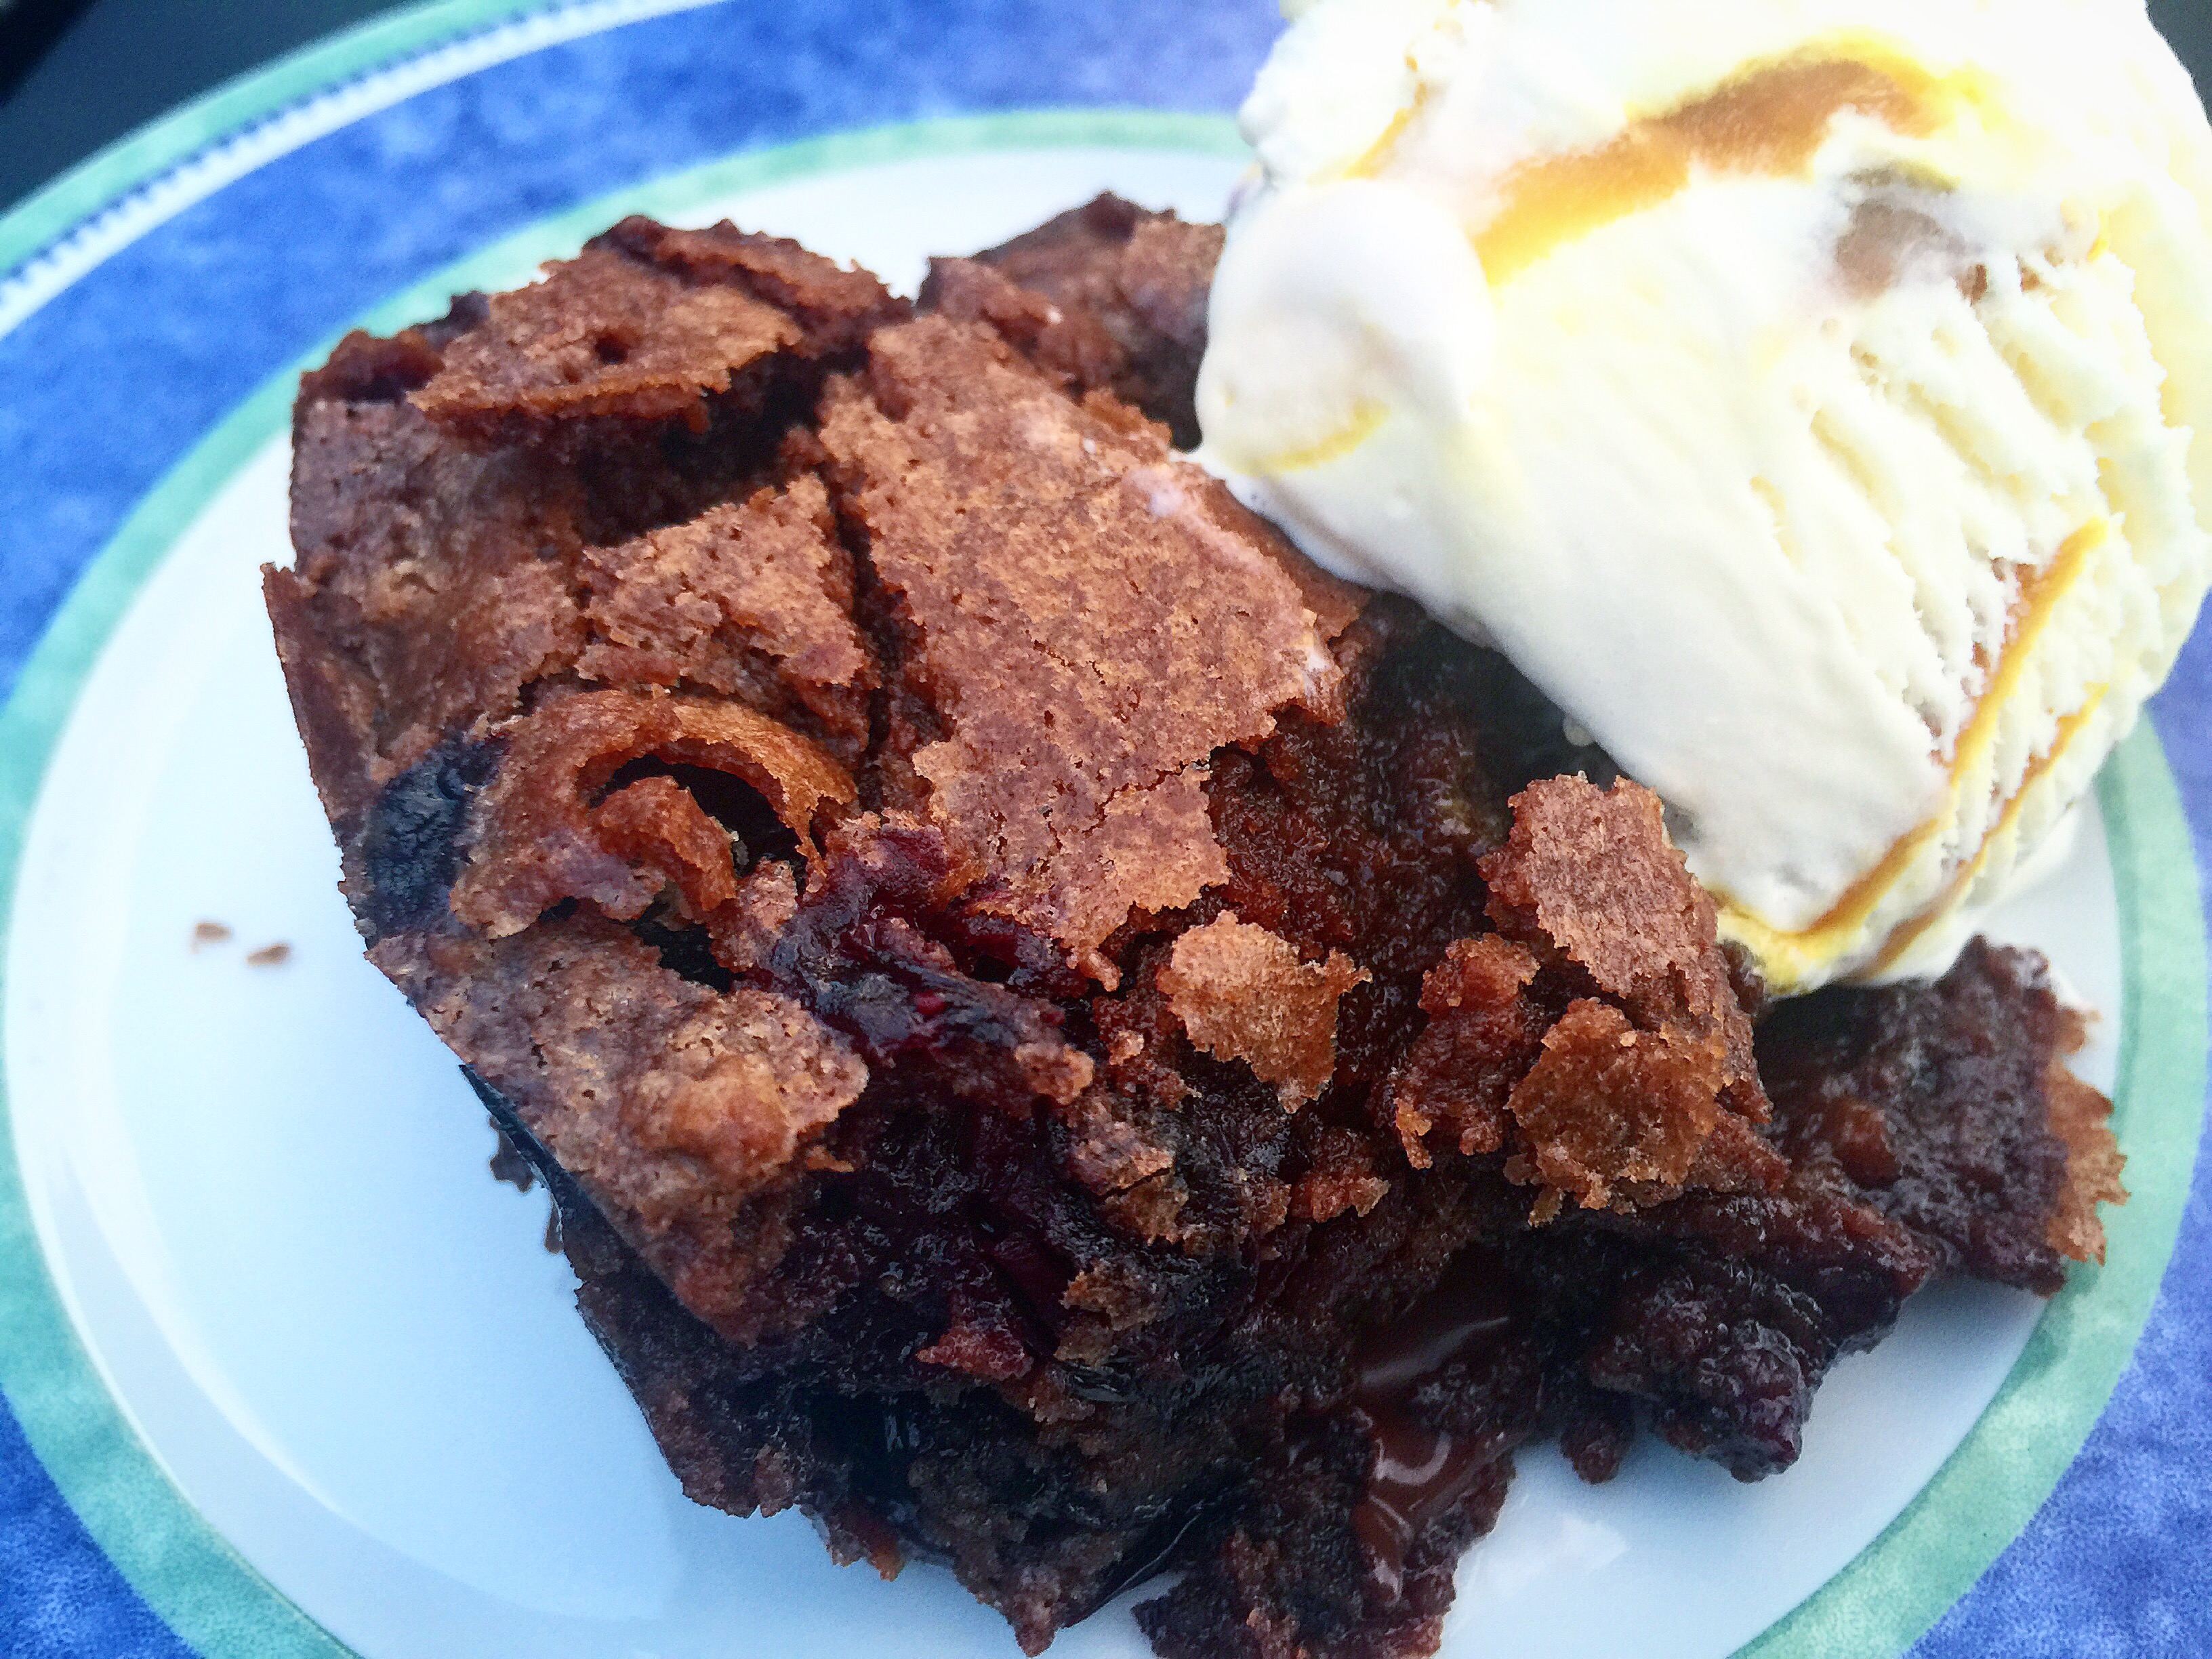 Pacific Northwest Blueberry Brownies